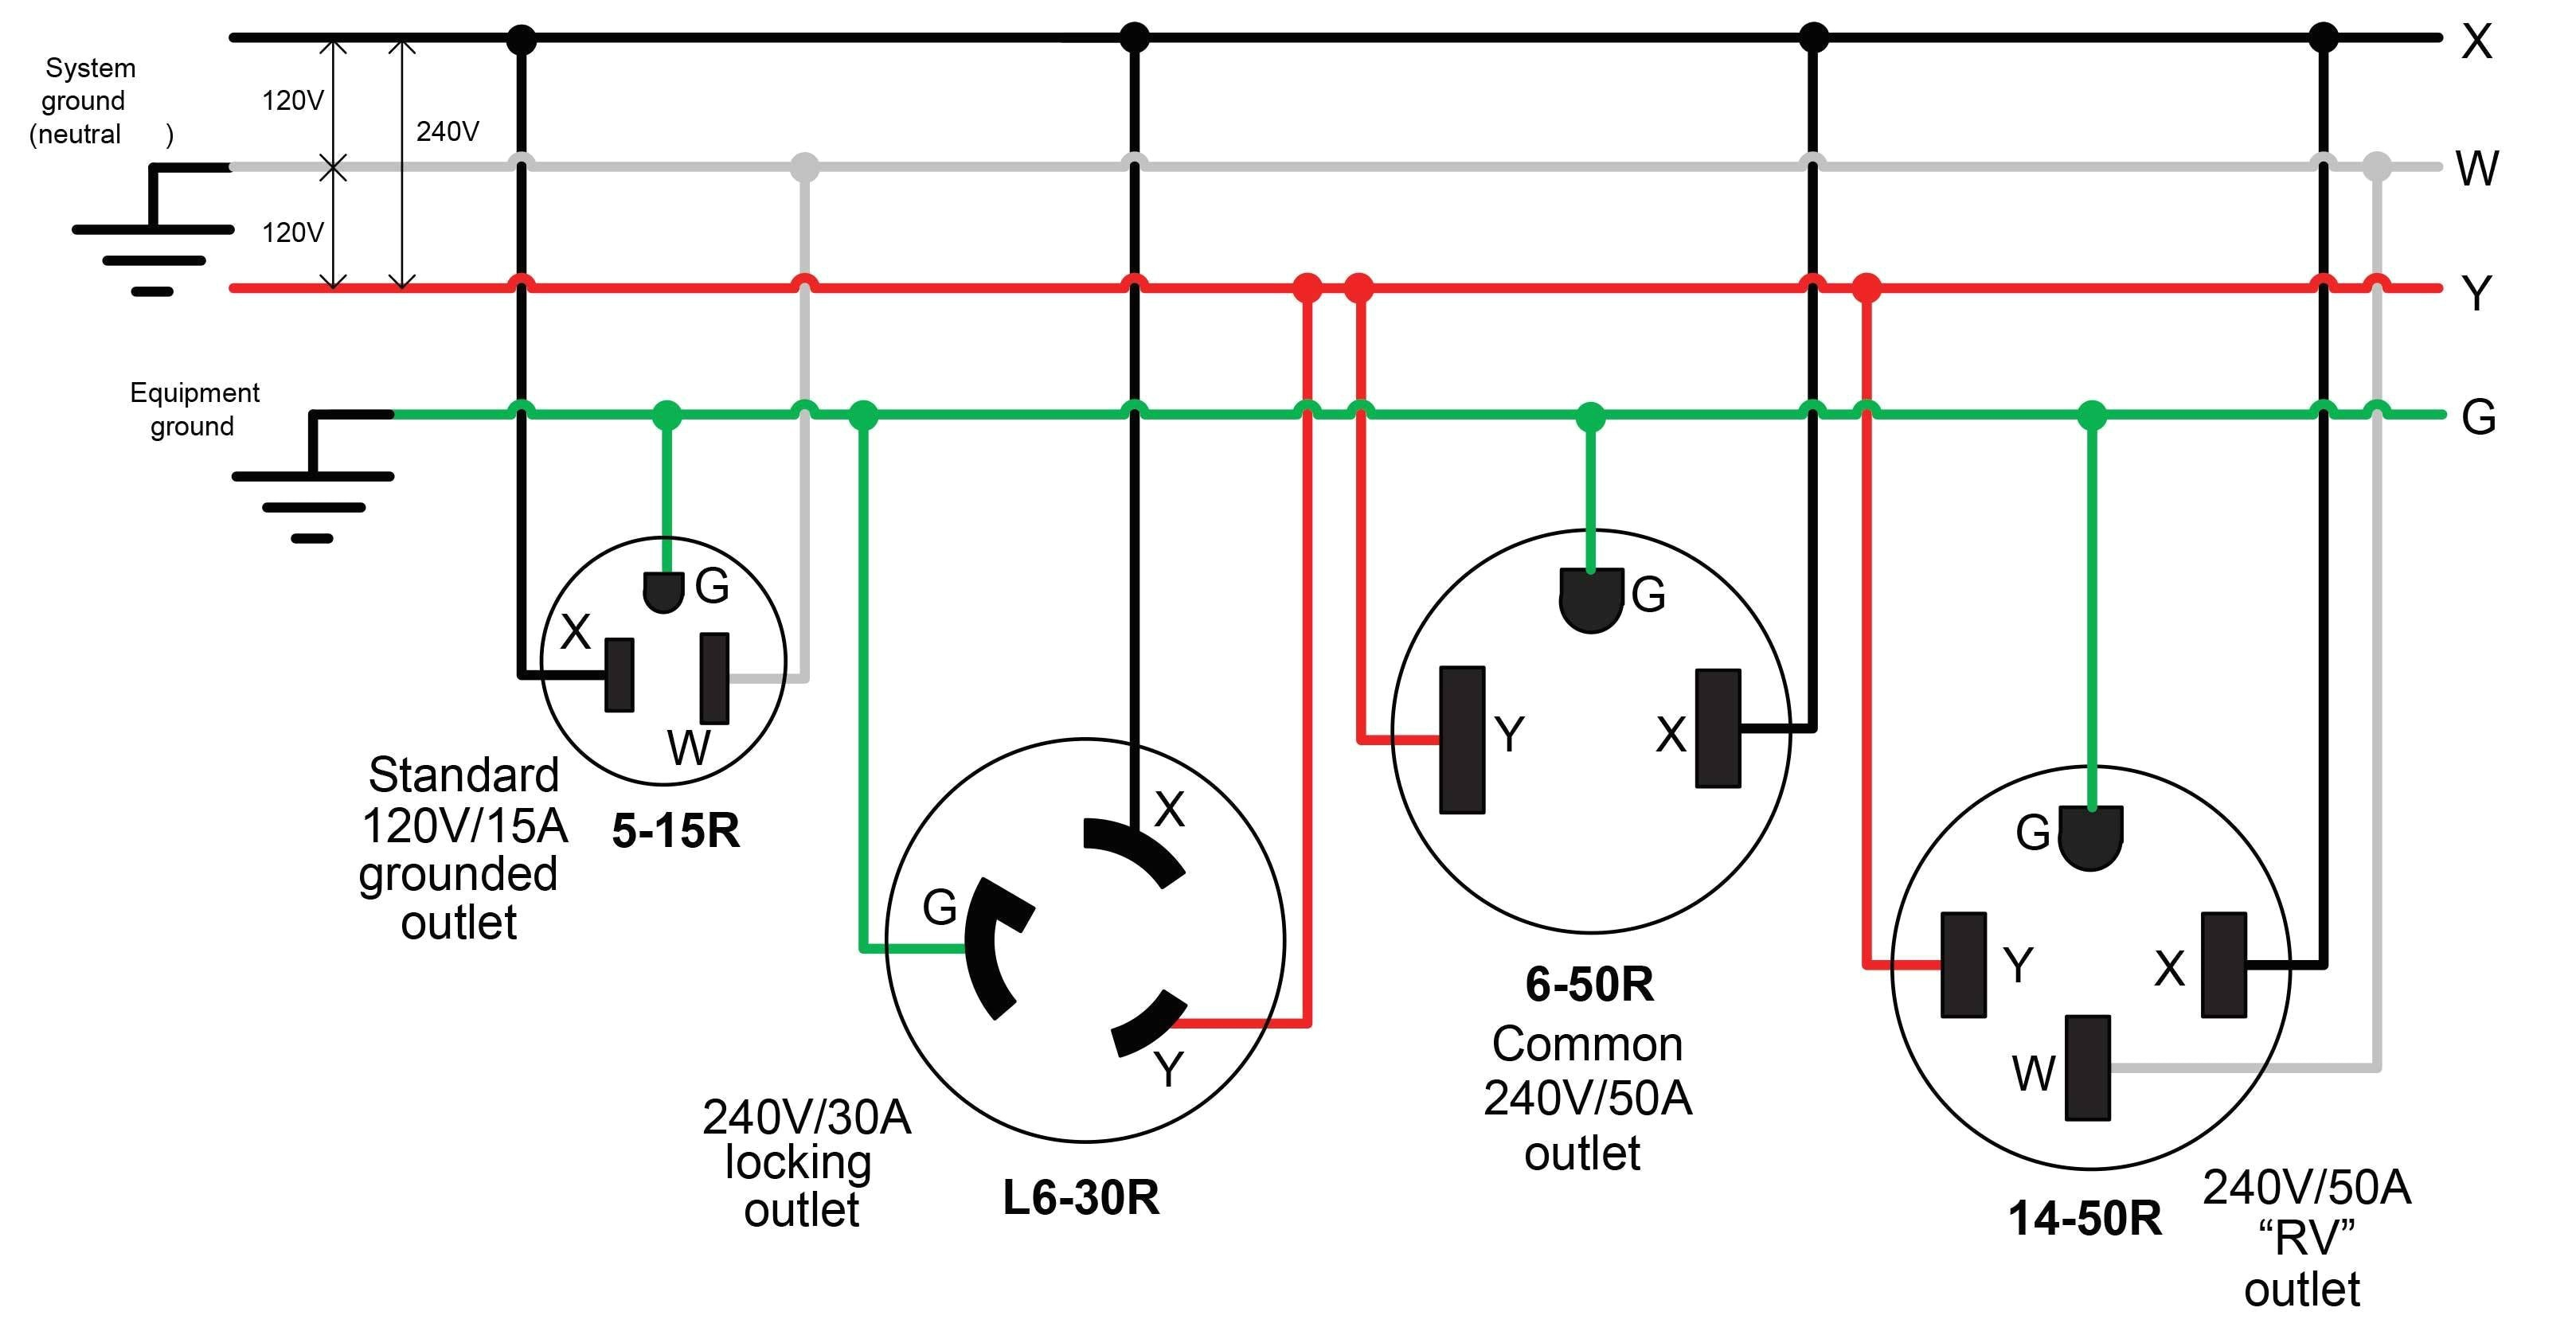 4 prong twist lock plug wiring diagram Download-Beautiful 4 Prong Twist Lock Plug Wiring Diagram 6-t